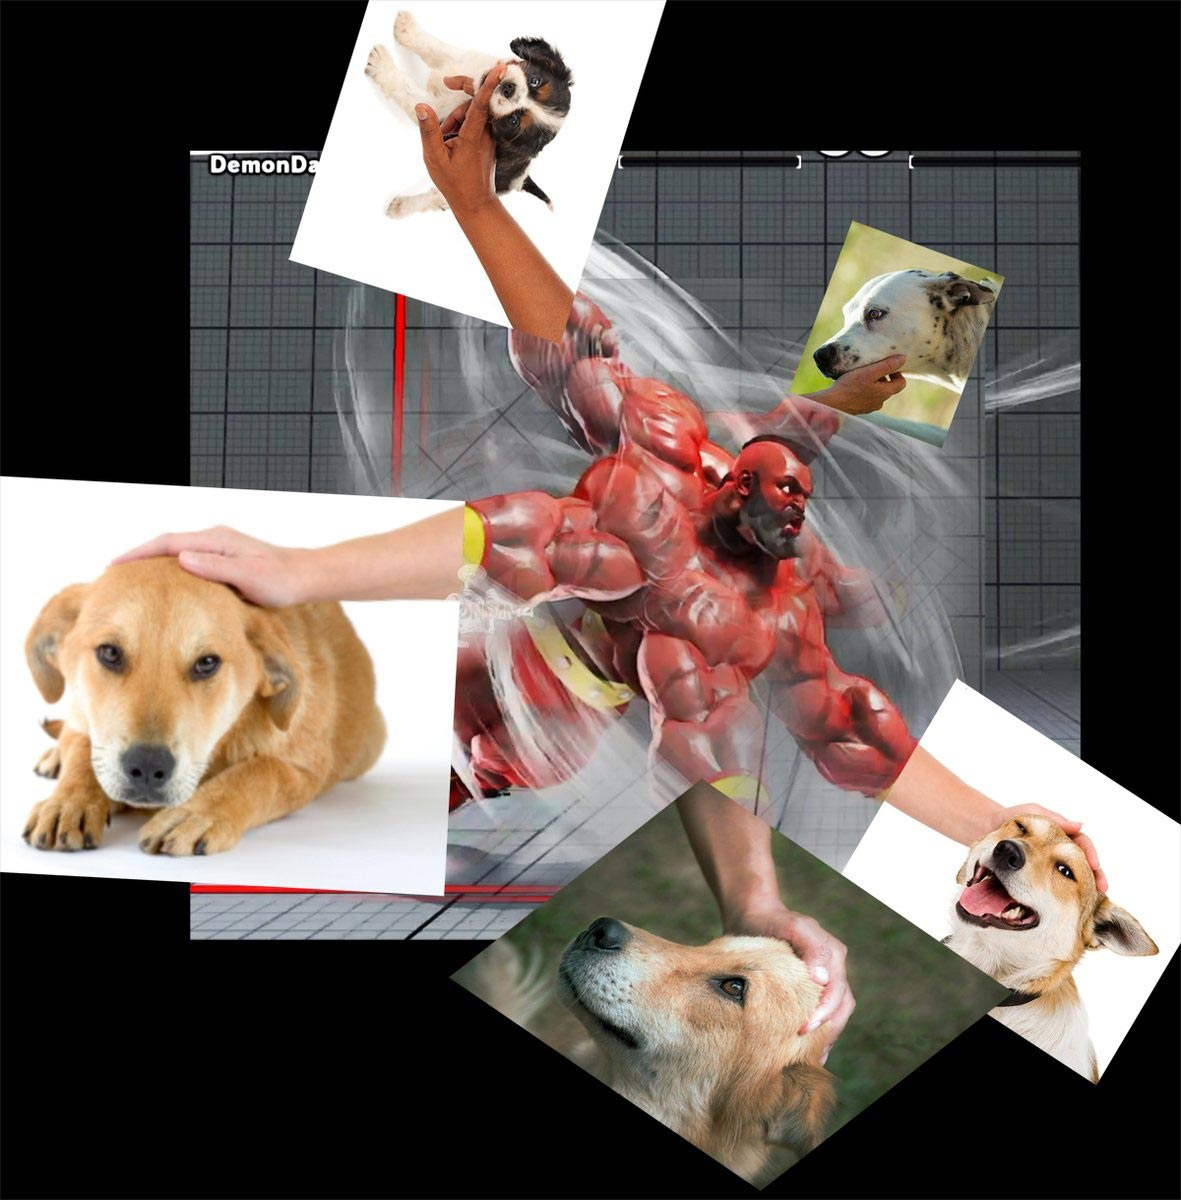 DemonDan14's fighting game-related dog memes 3 out of 10 image gallery